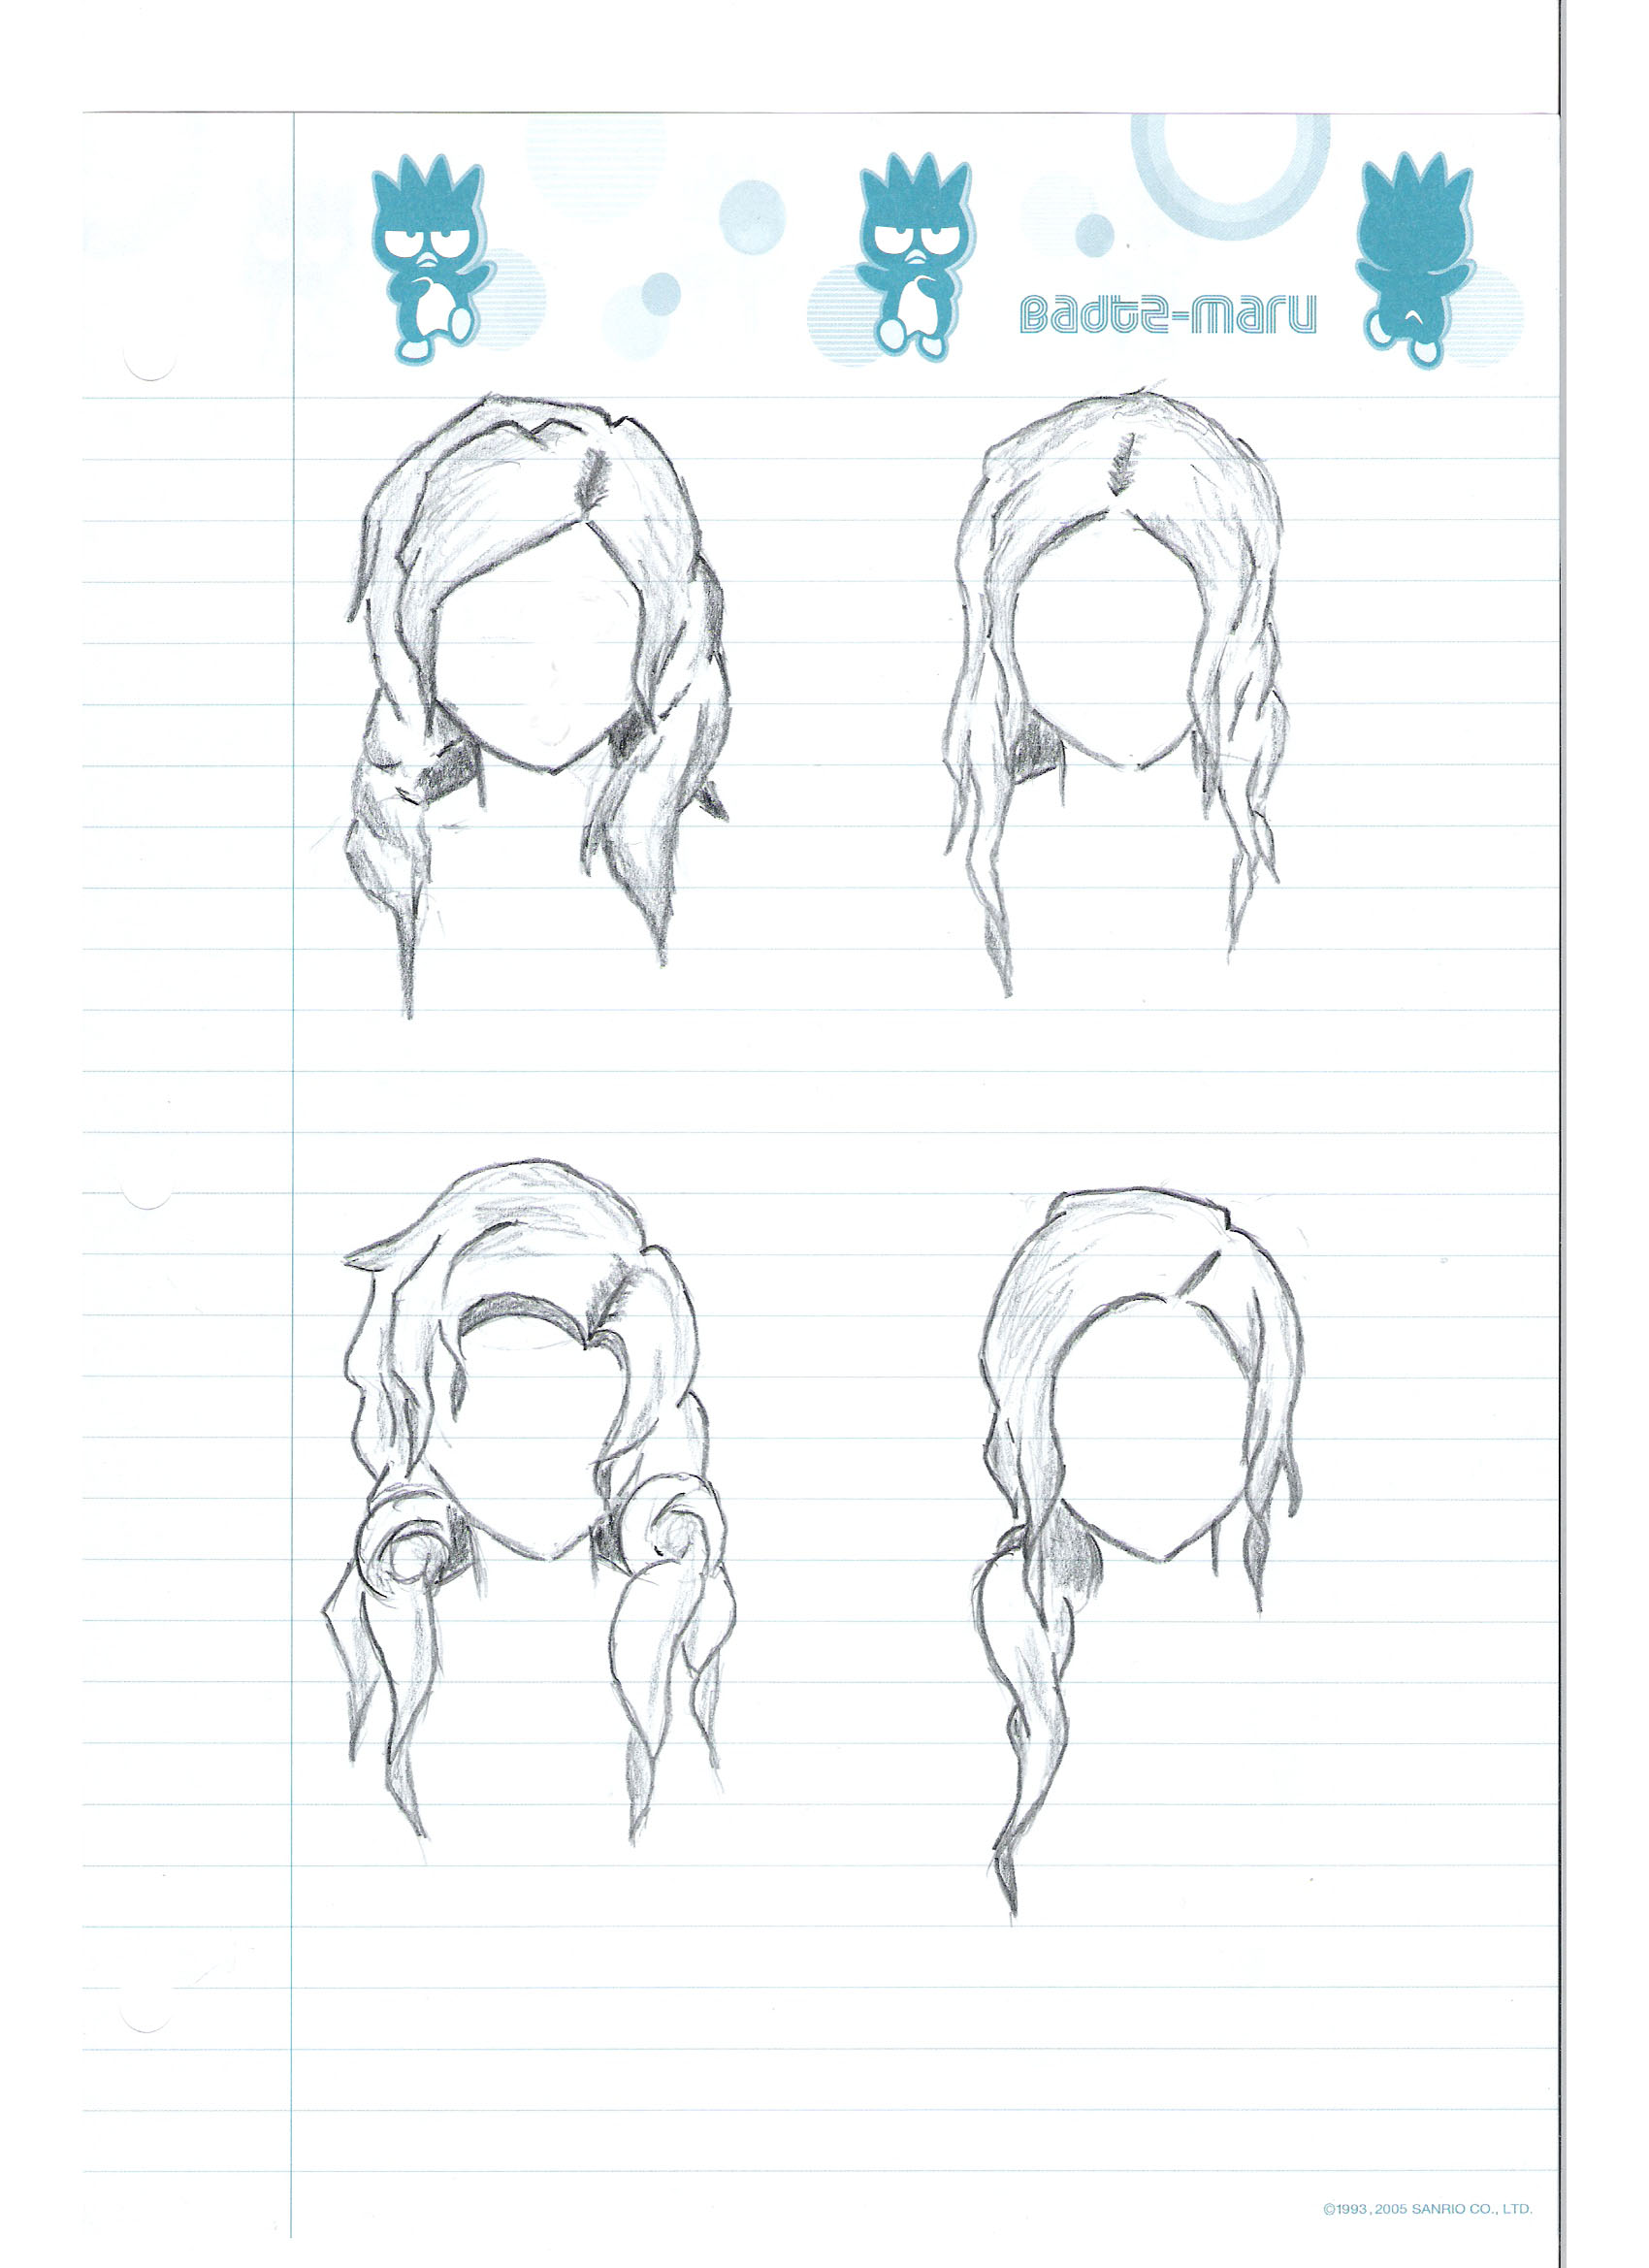 Manga Hair Template 1 By Kevin Ke On Deviantart